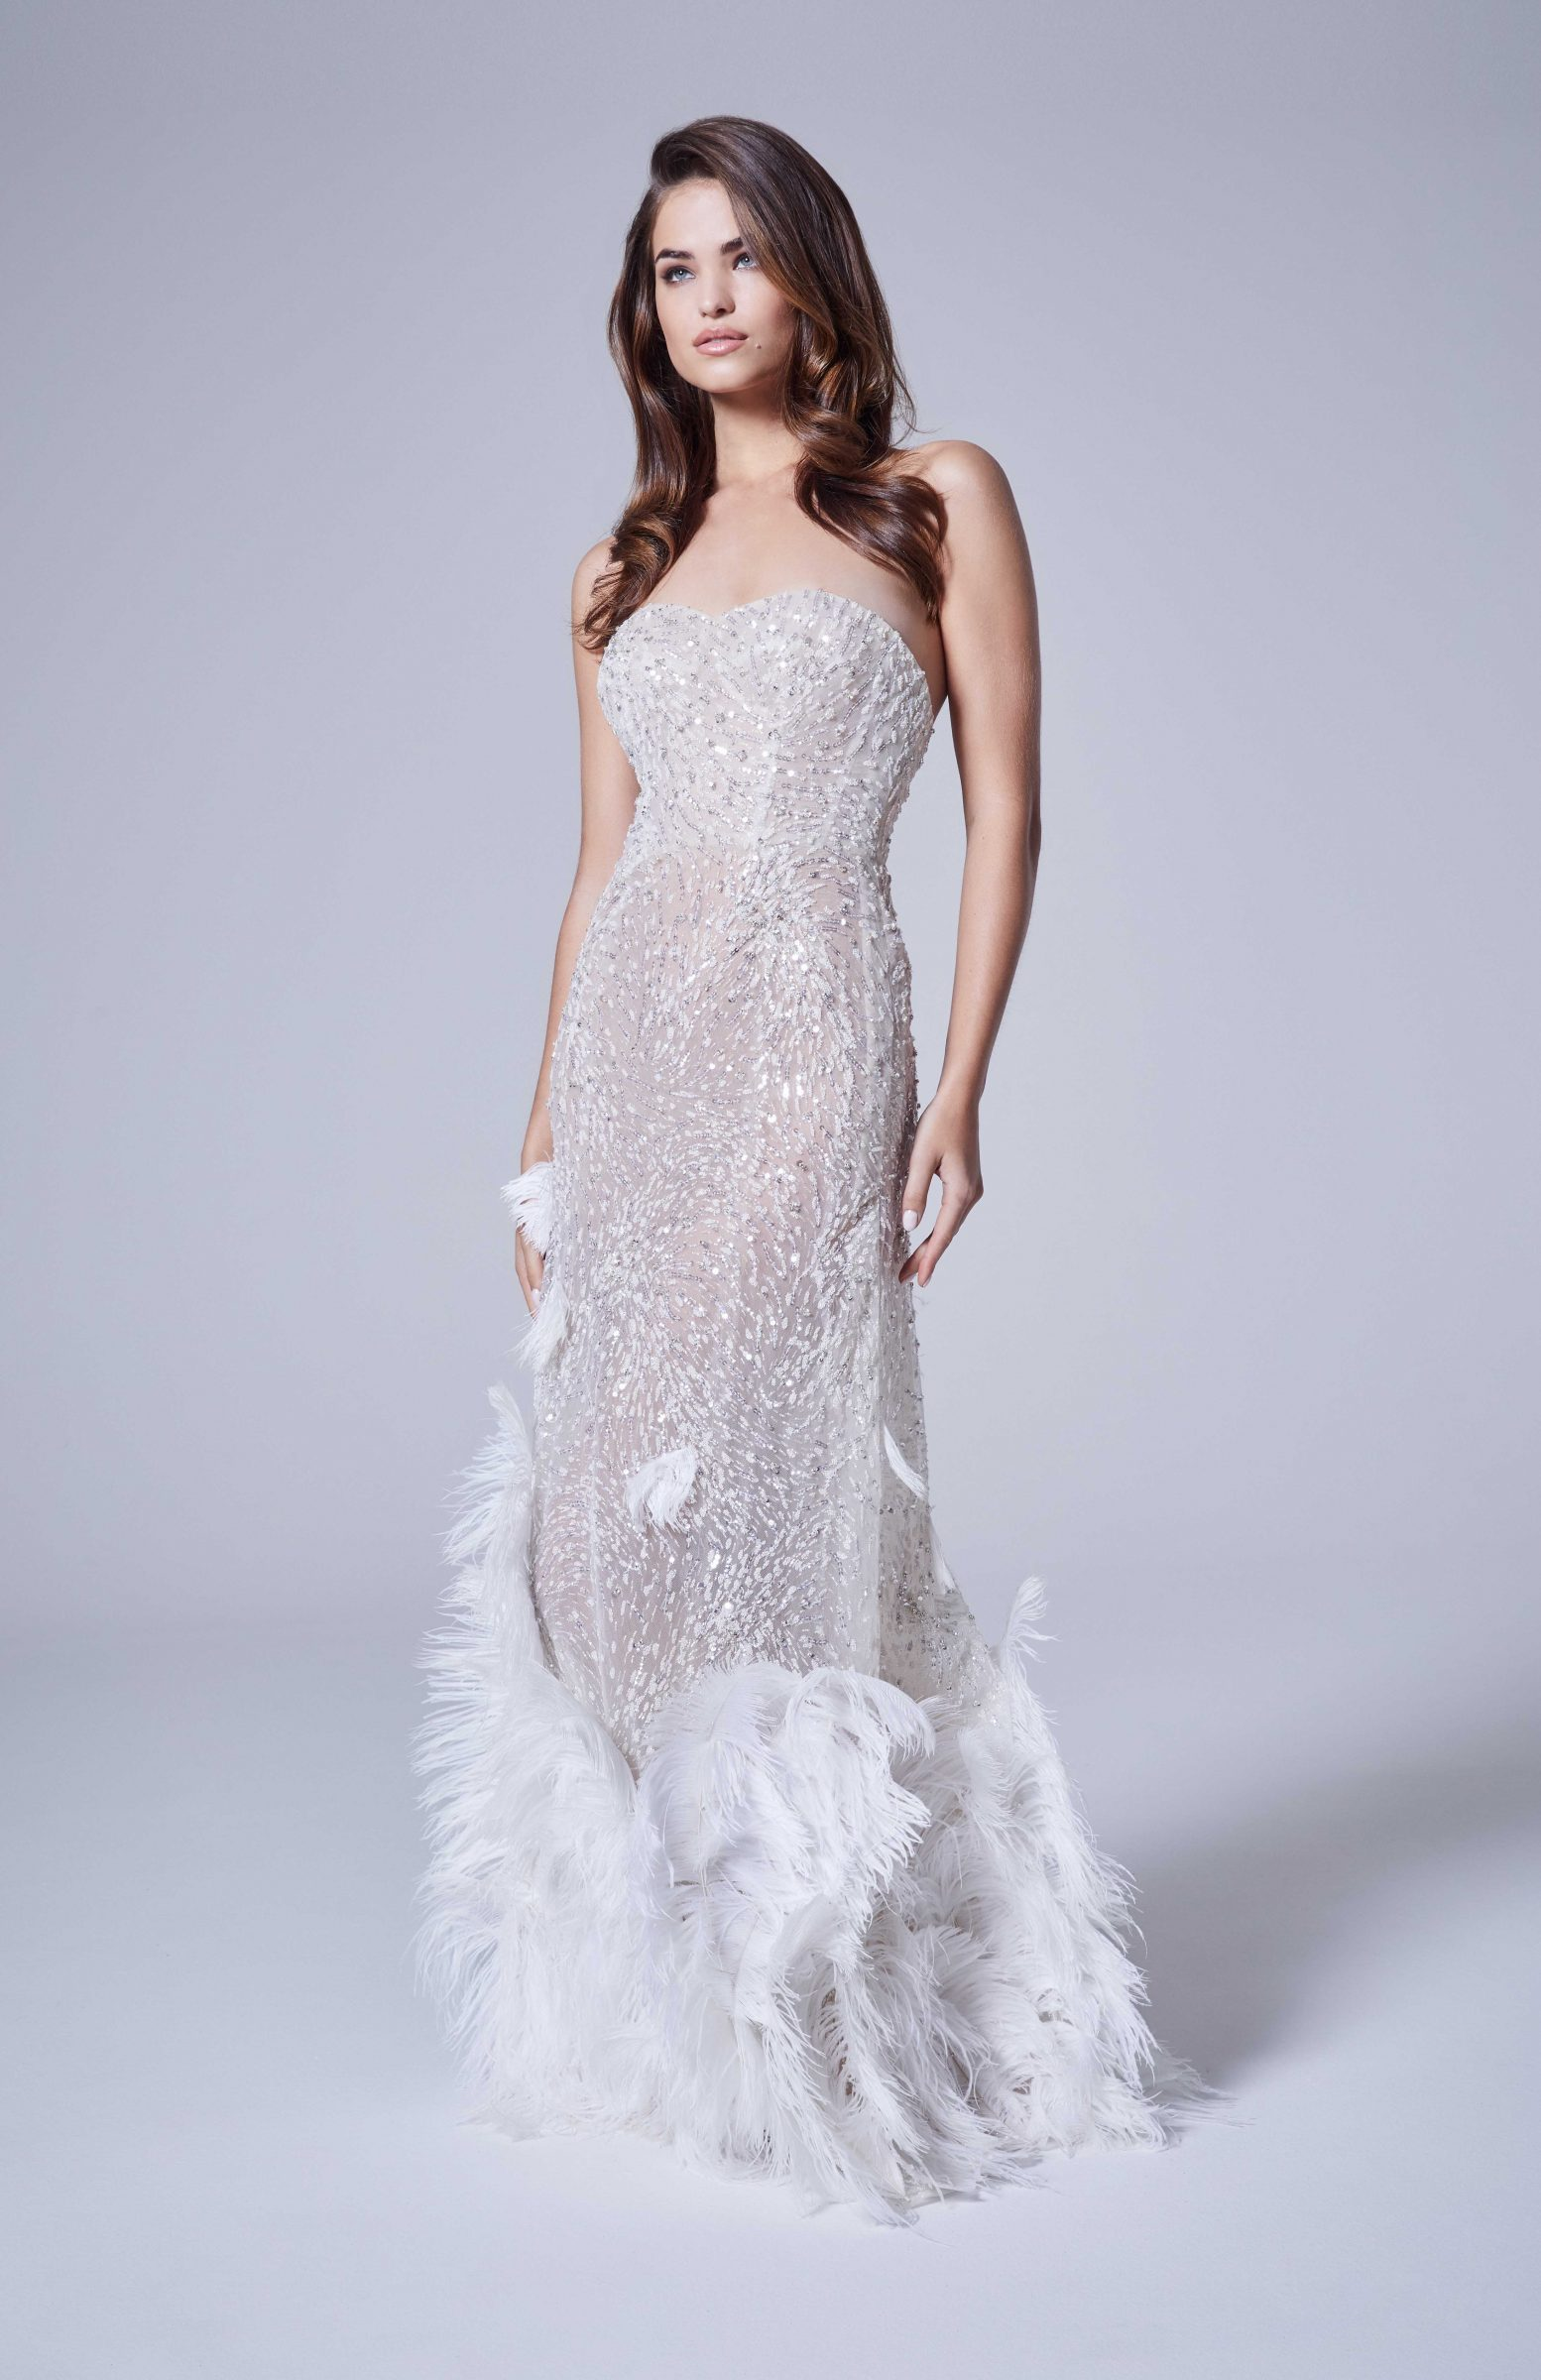 Sequin bridal gown with white feathers on bottom by Nicole + Felicia Couture